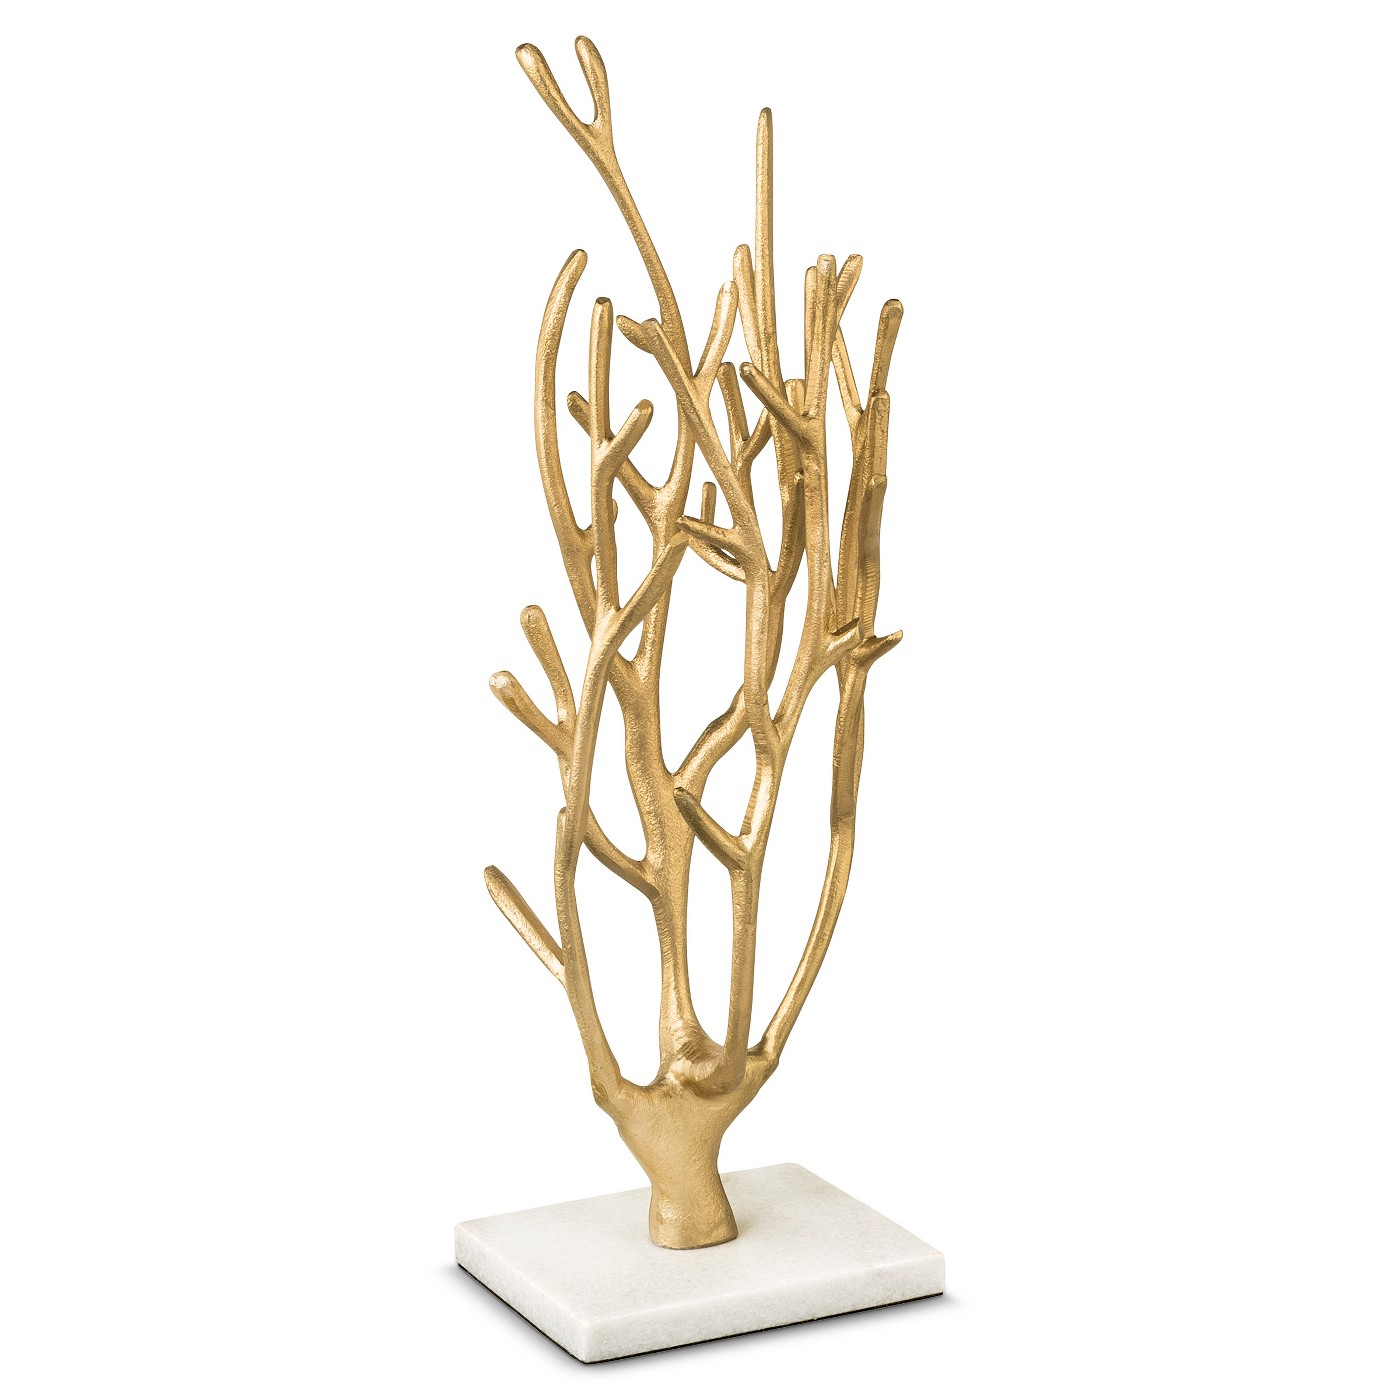 At the end of the day, we all need a place to hang our jewelry. And this coral stand pays subtle homage to Pantone's 2019 color of the year, Living Coral, without clashing with your décor — or upstaging your tennis bracelet. Marble and Coral Jewelry Tree Storage in gold by West Emory, $18 at  Target .